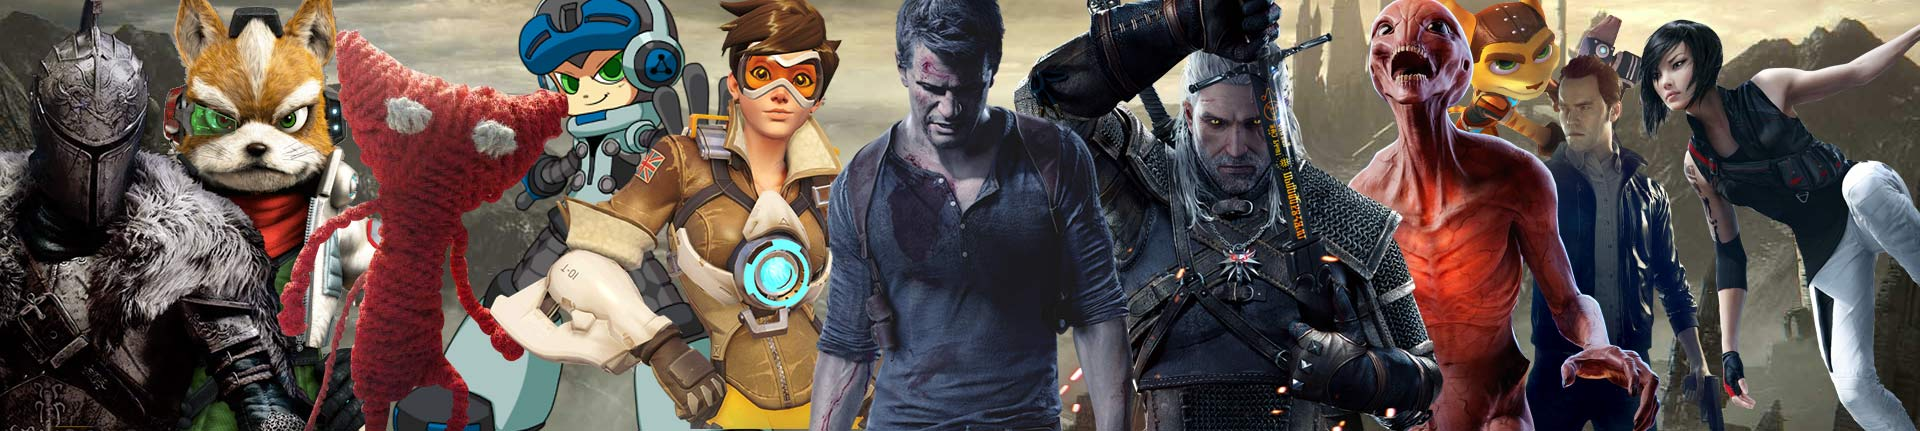 The best, worst, most disappointing and most surprising games of 2016 so far